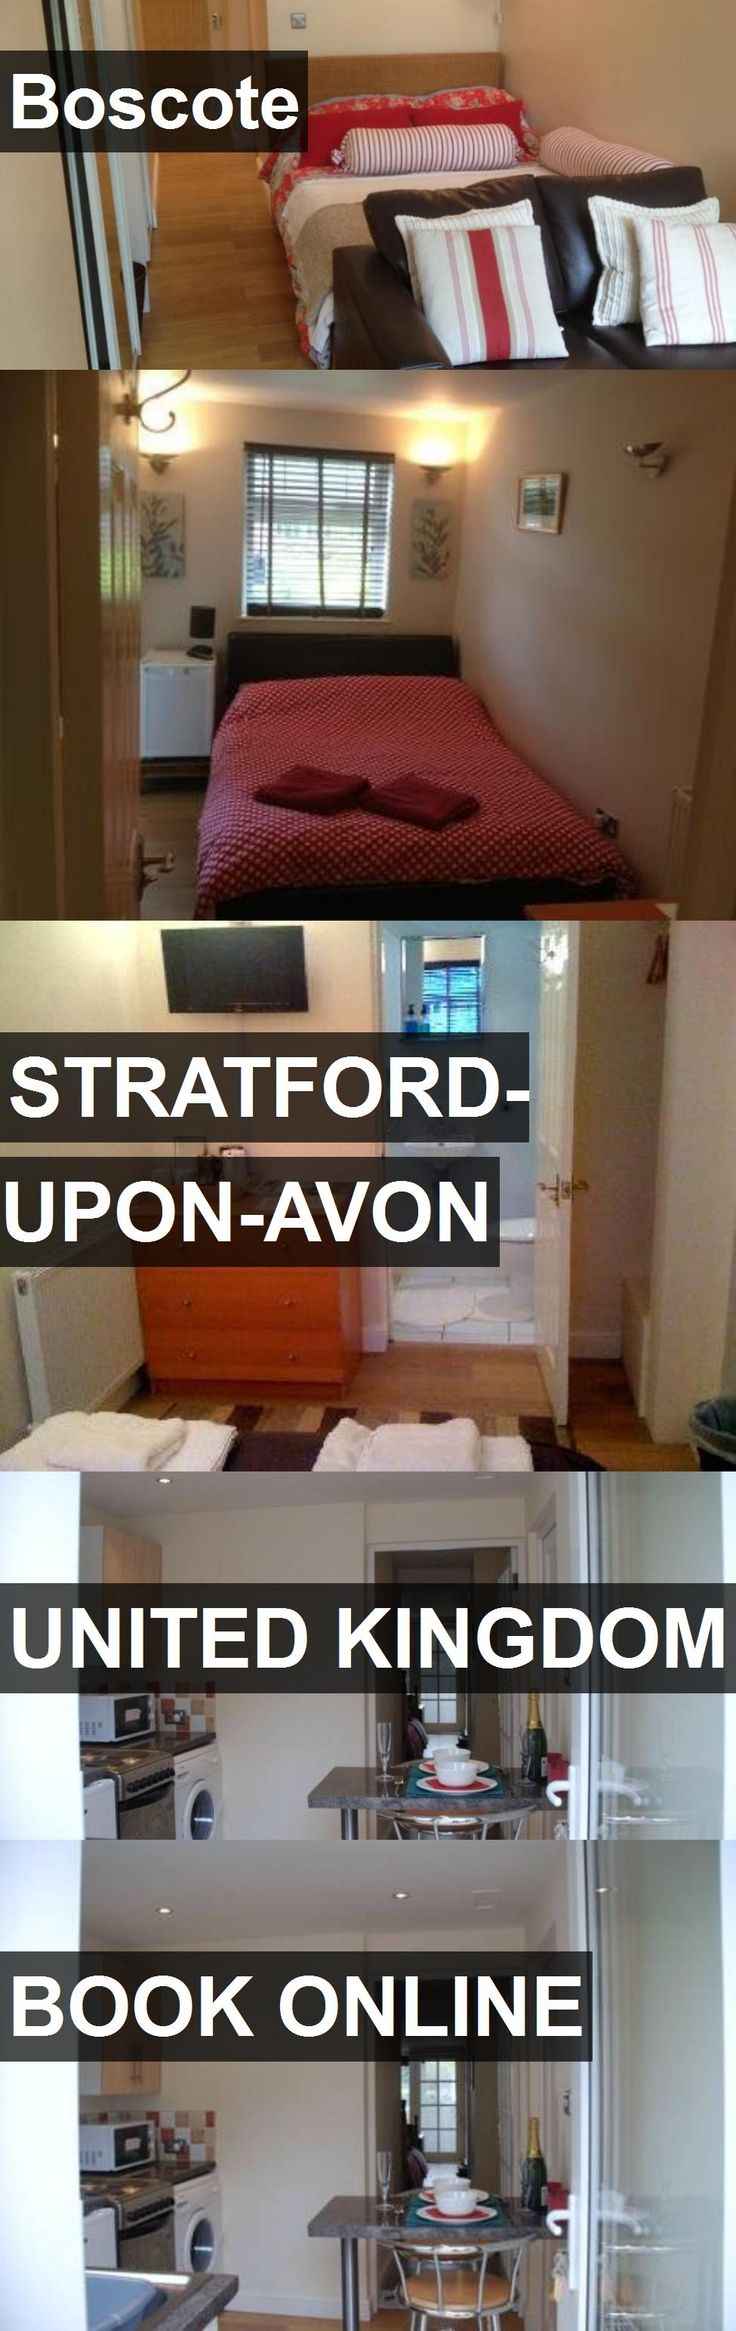 Hotel Boscote in Stratford-Upon-Avon, United Kingdom. For more information, photos, reviews and best prices please follow the link. #UnitedKingdom #Stratford-Upon-Avon #Boscote #hotel #travel #vacation